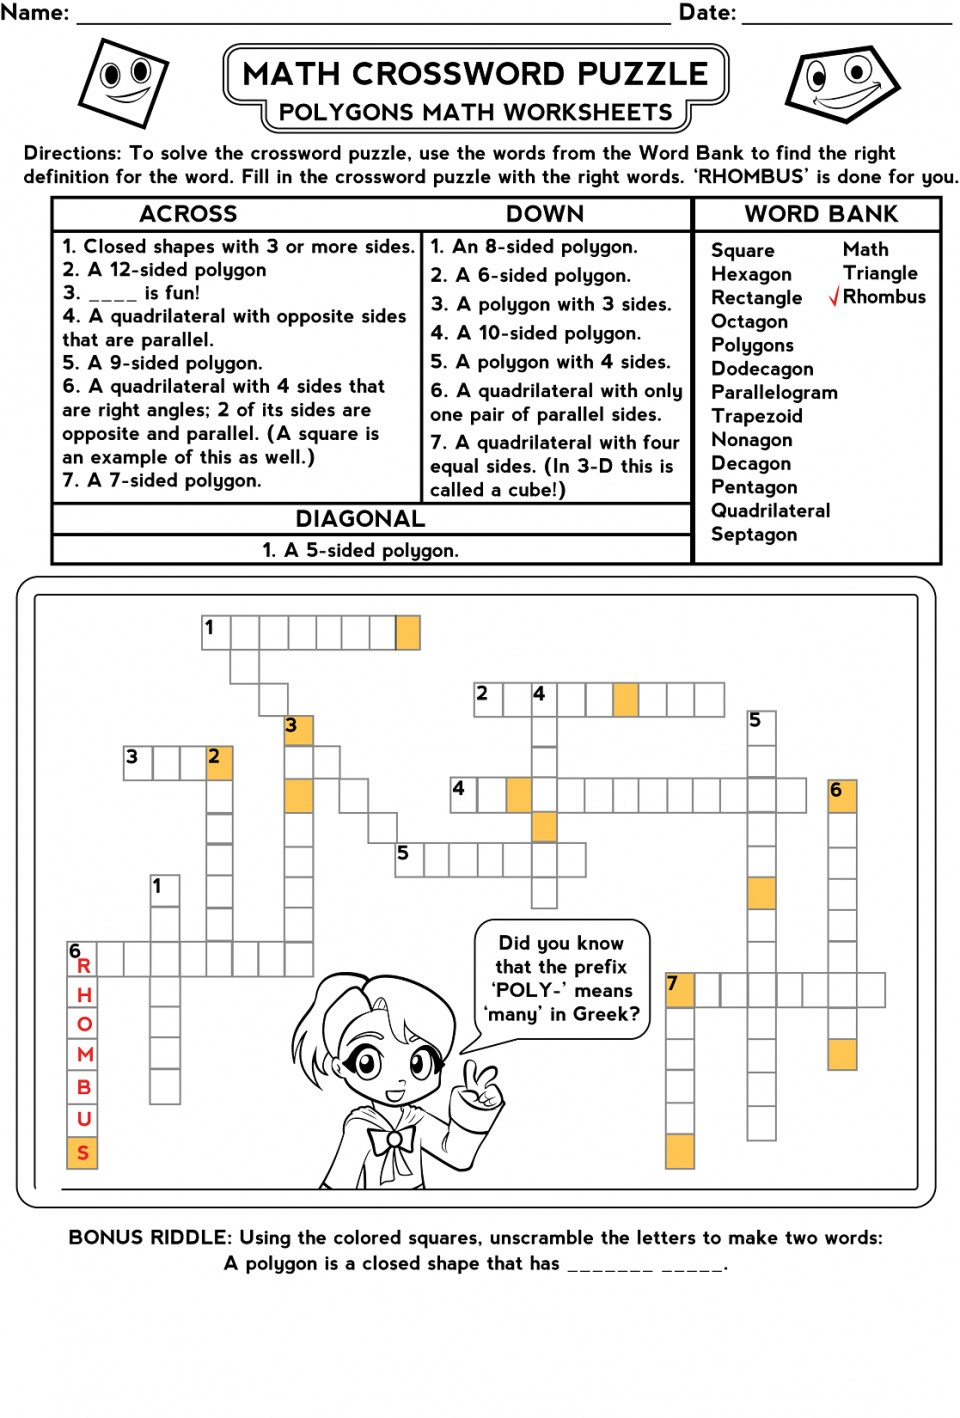 Free Printable Math Puzzles Number Crosswords Make Puzzle Worksheet - Printable Math Crossword Puzzles For High School